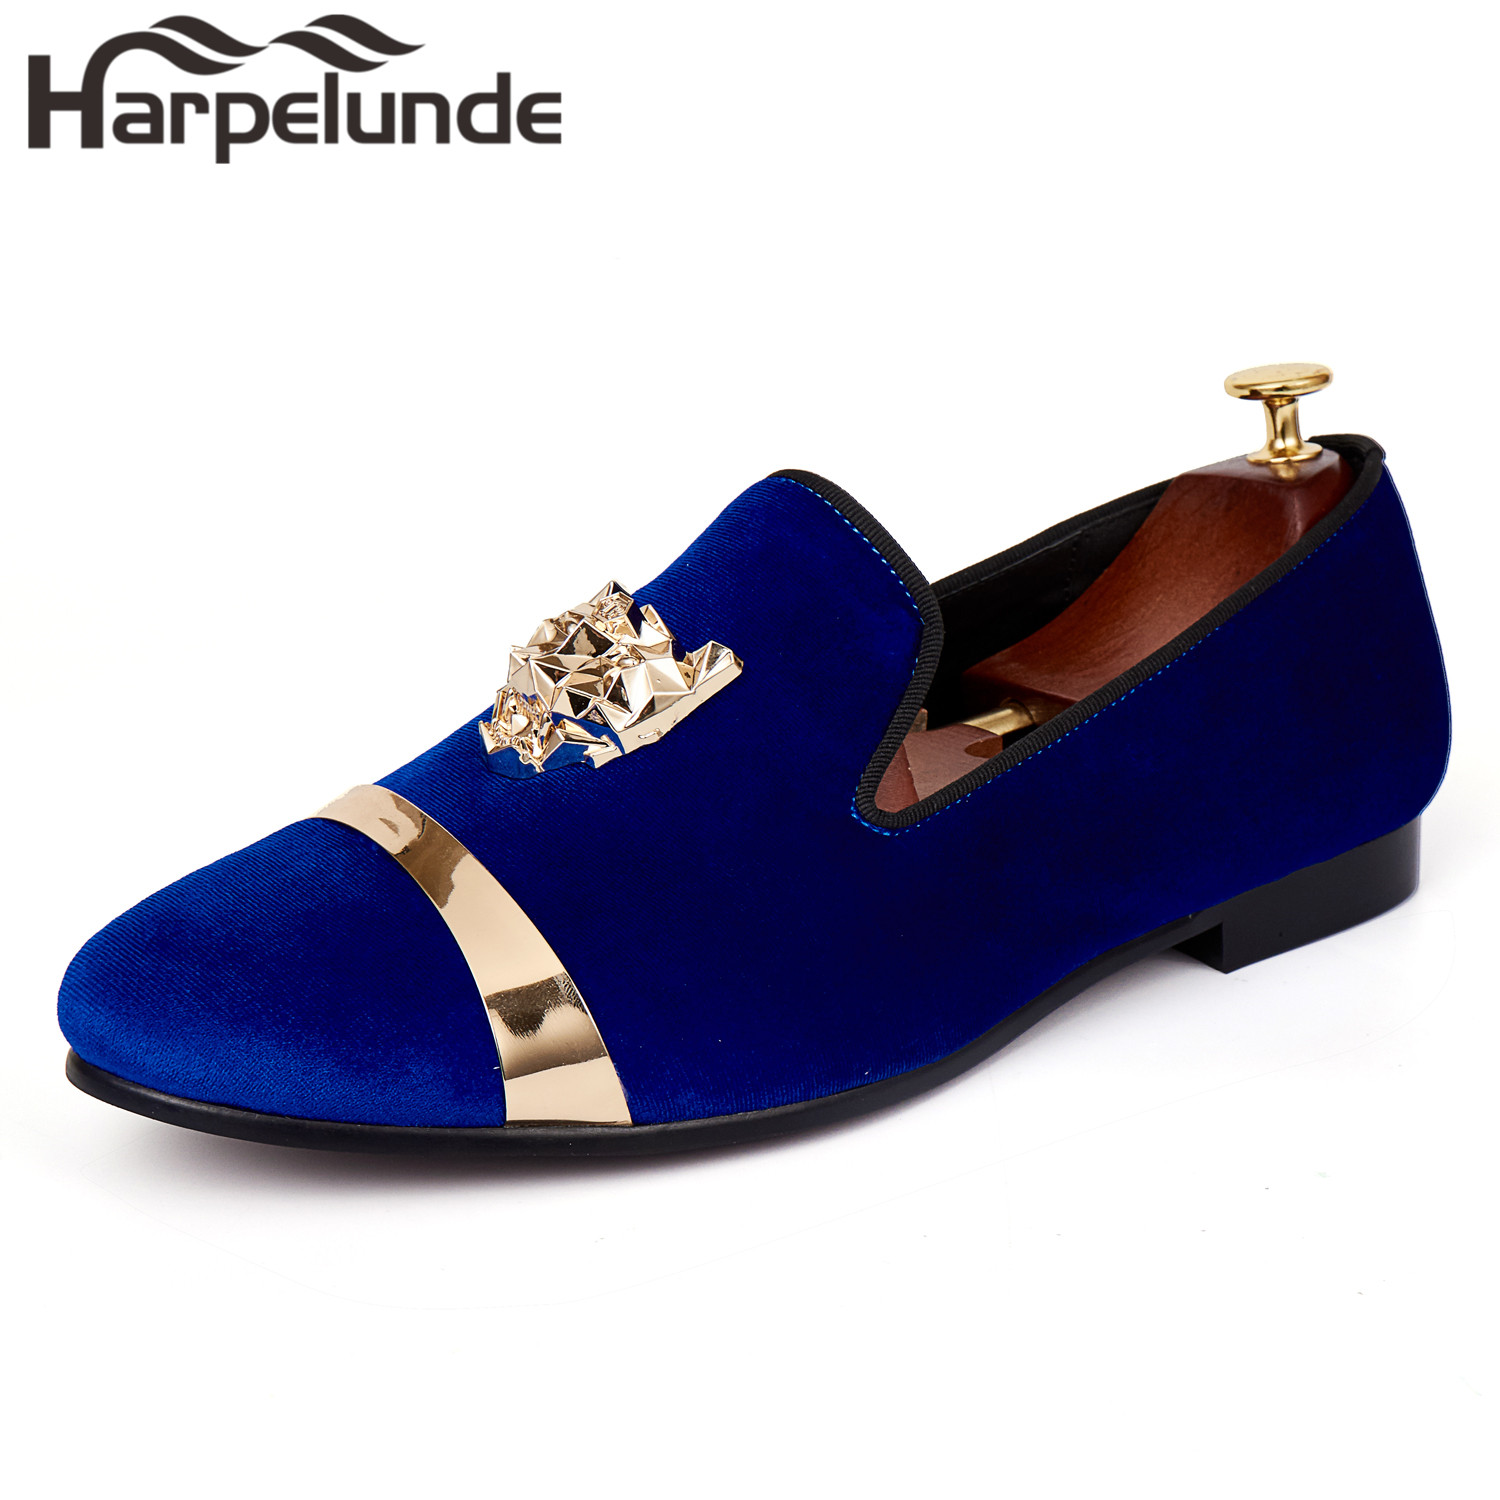 Harpelunde Men Flat Shoes Animal Buckle Blue Velvet Dress Loafers s velikostí zlaté desky 6-14